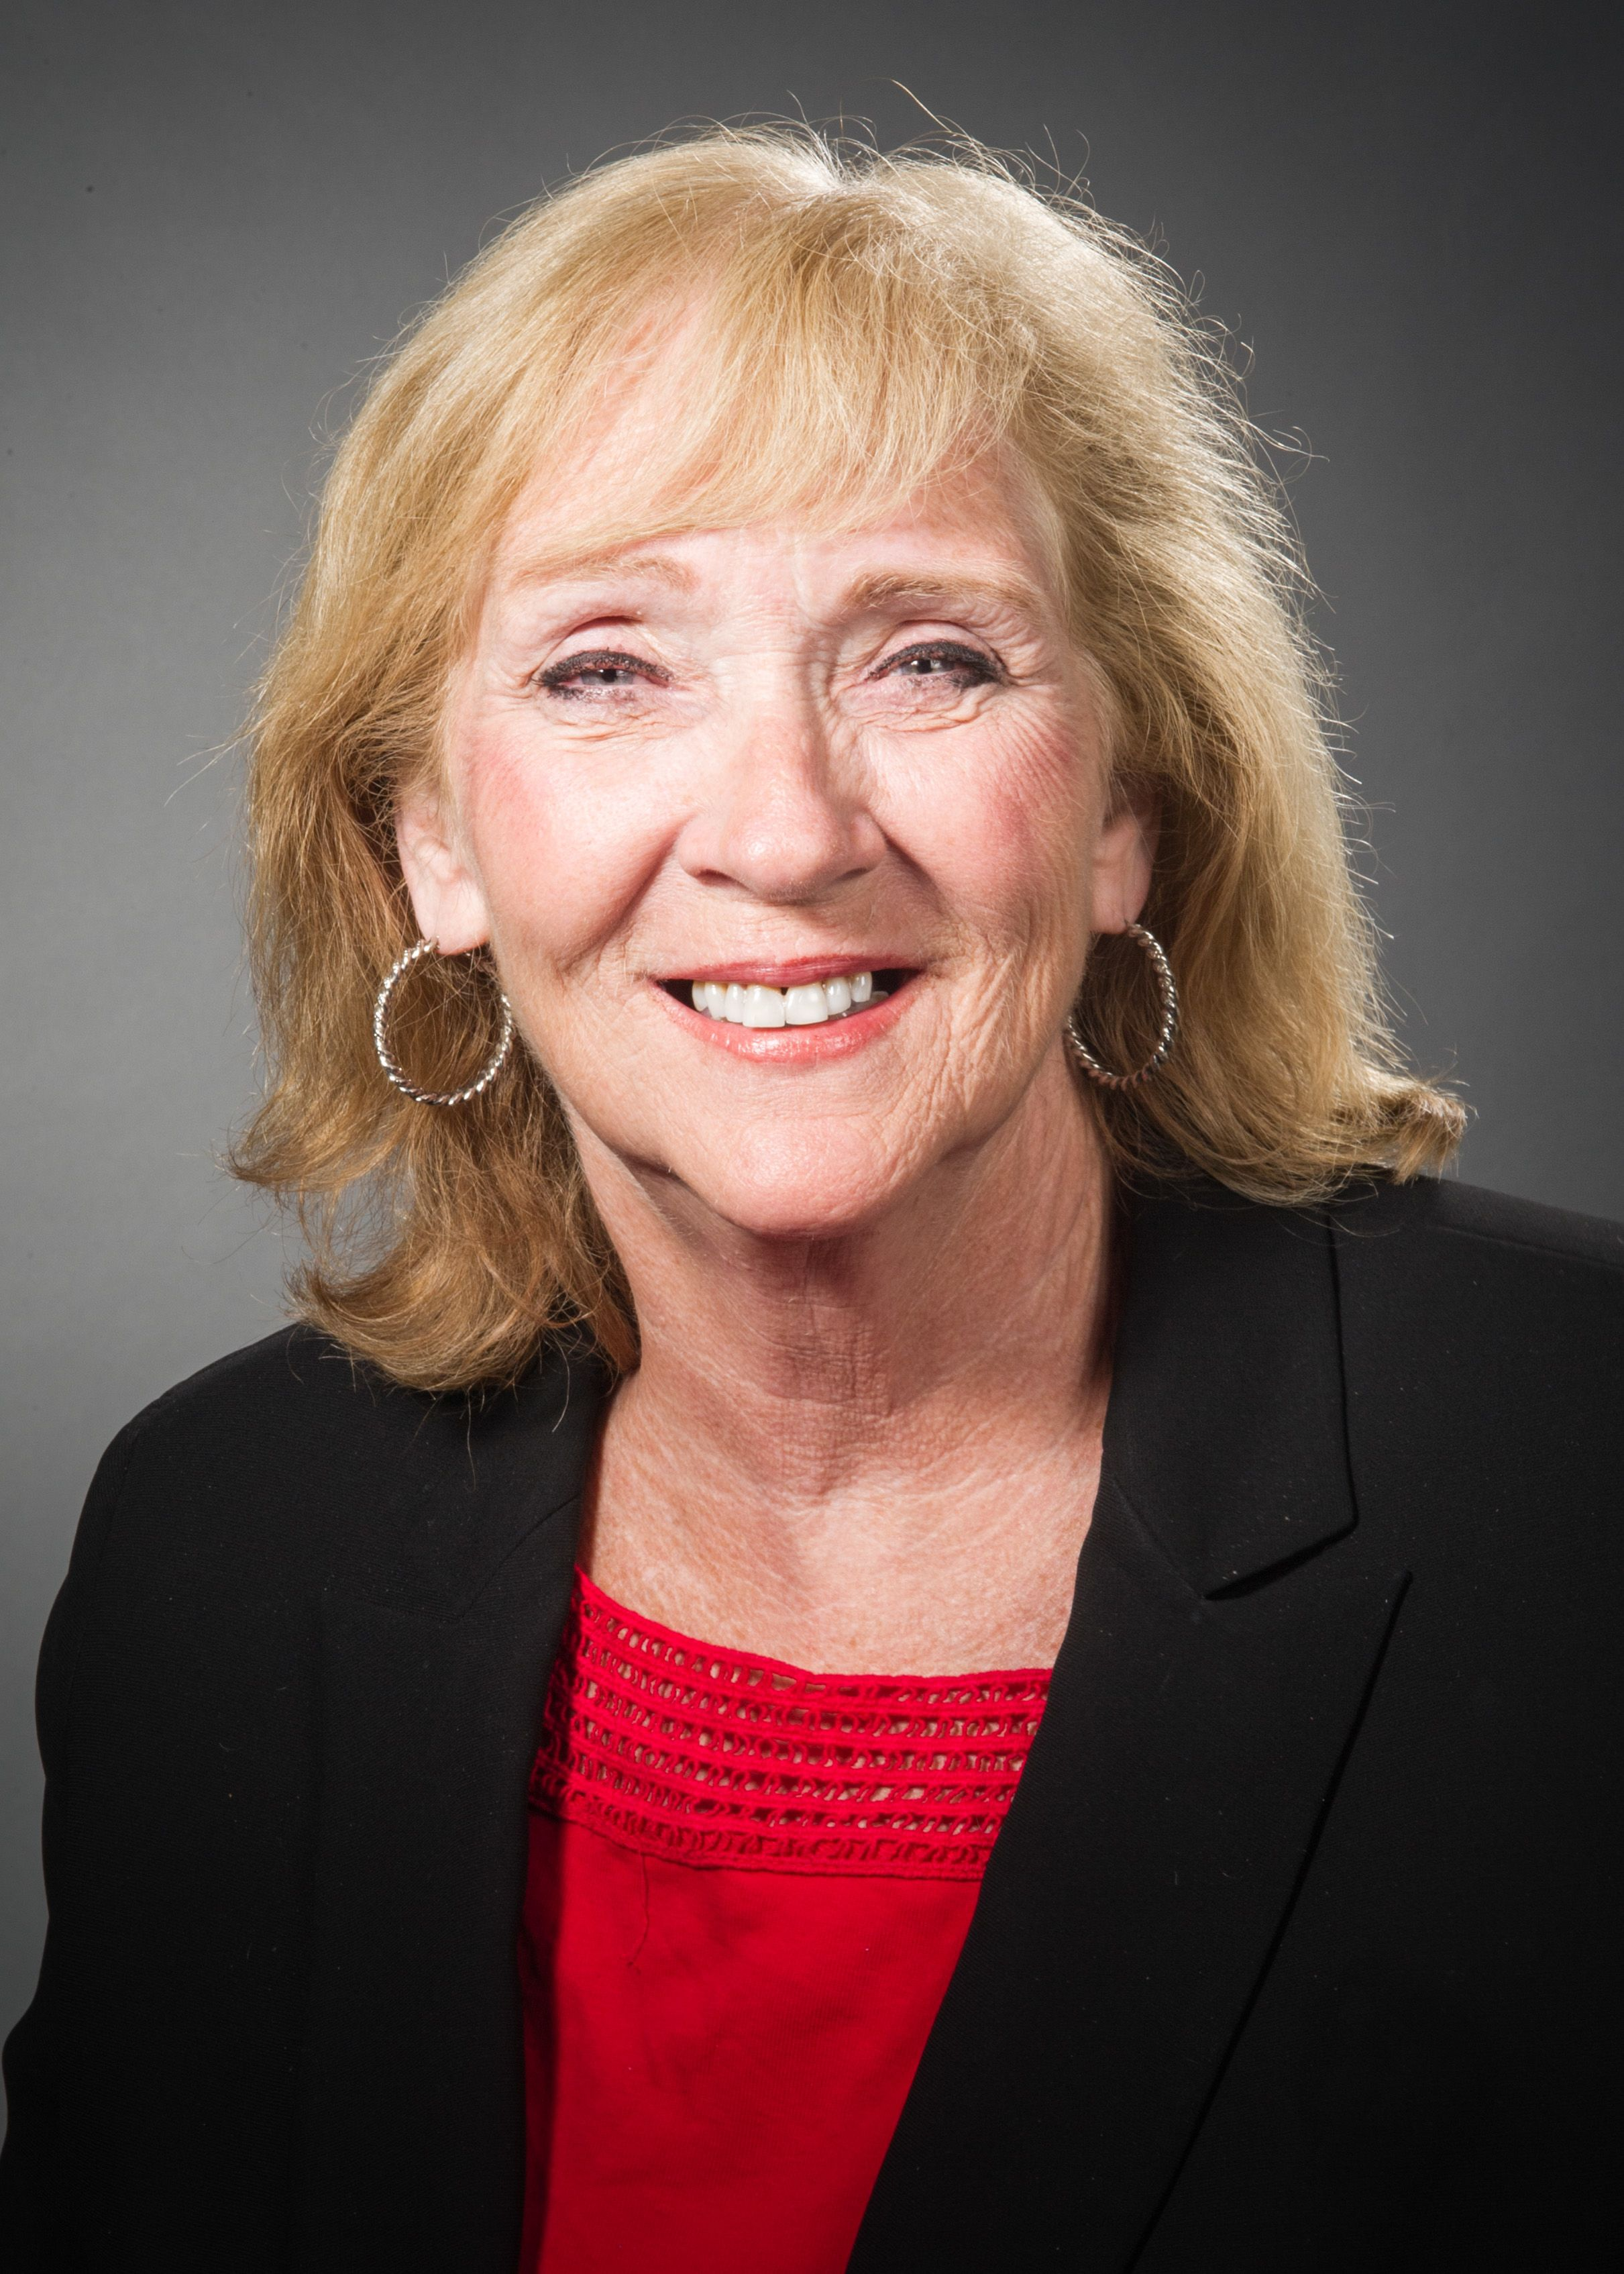 Barbara Geraghty, RN, in a black jacket and red blouse